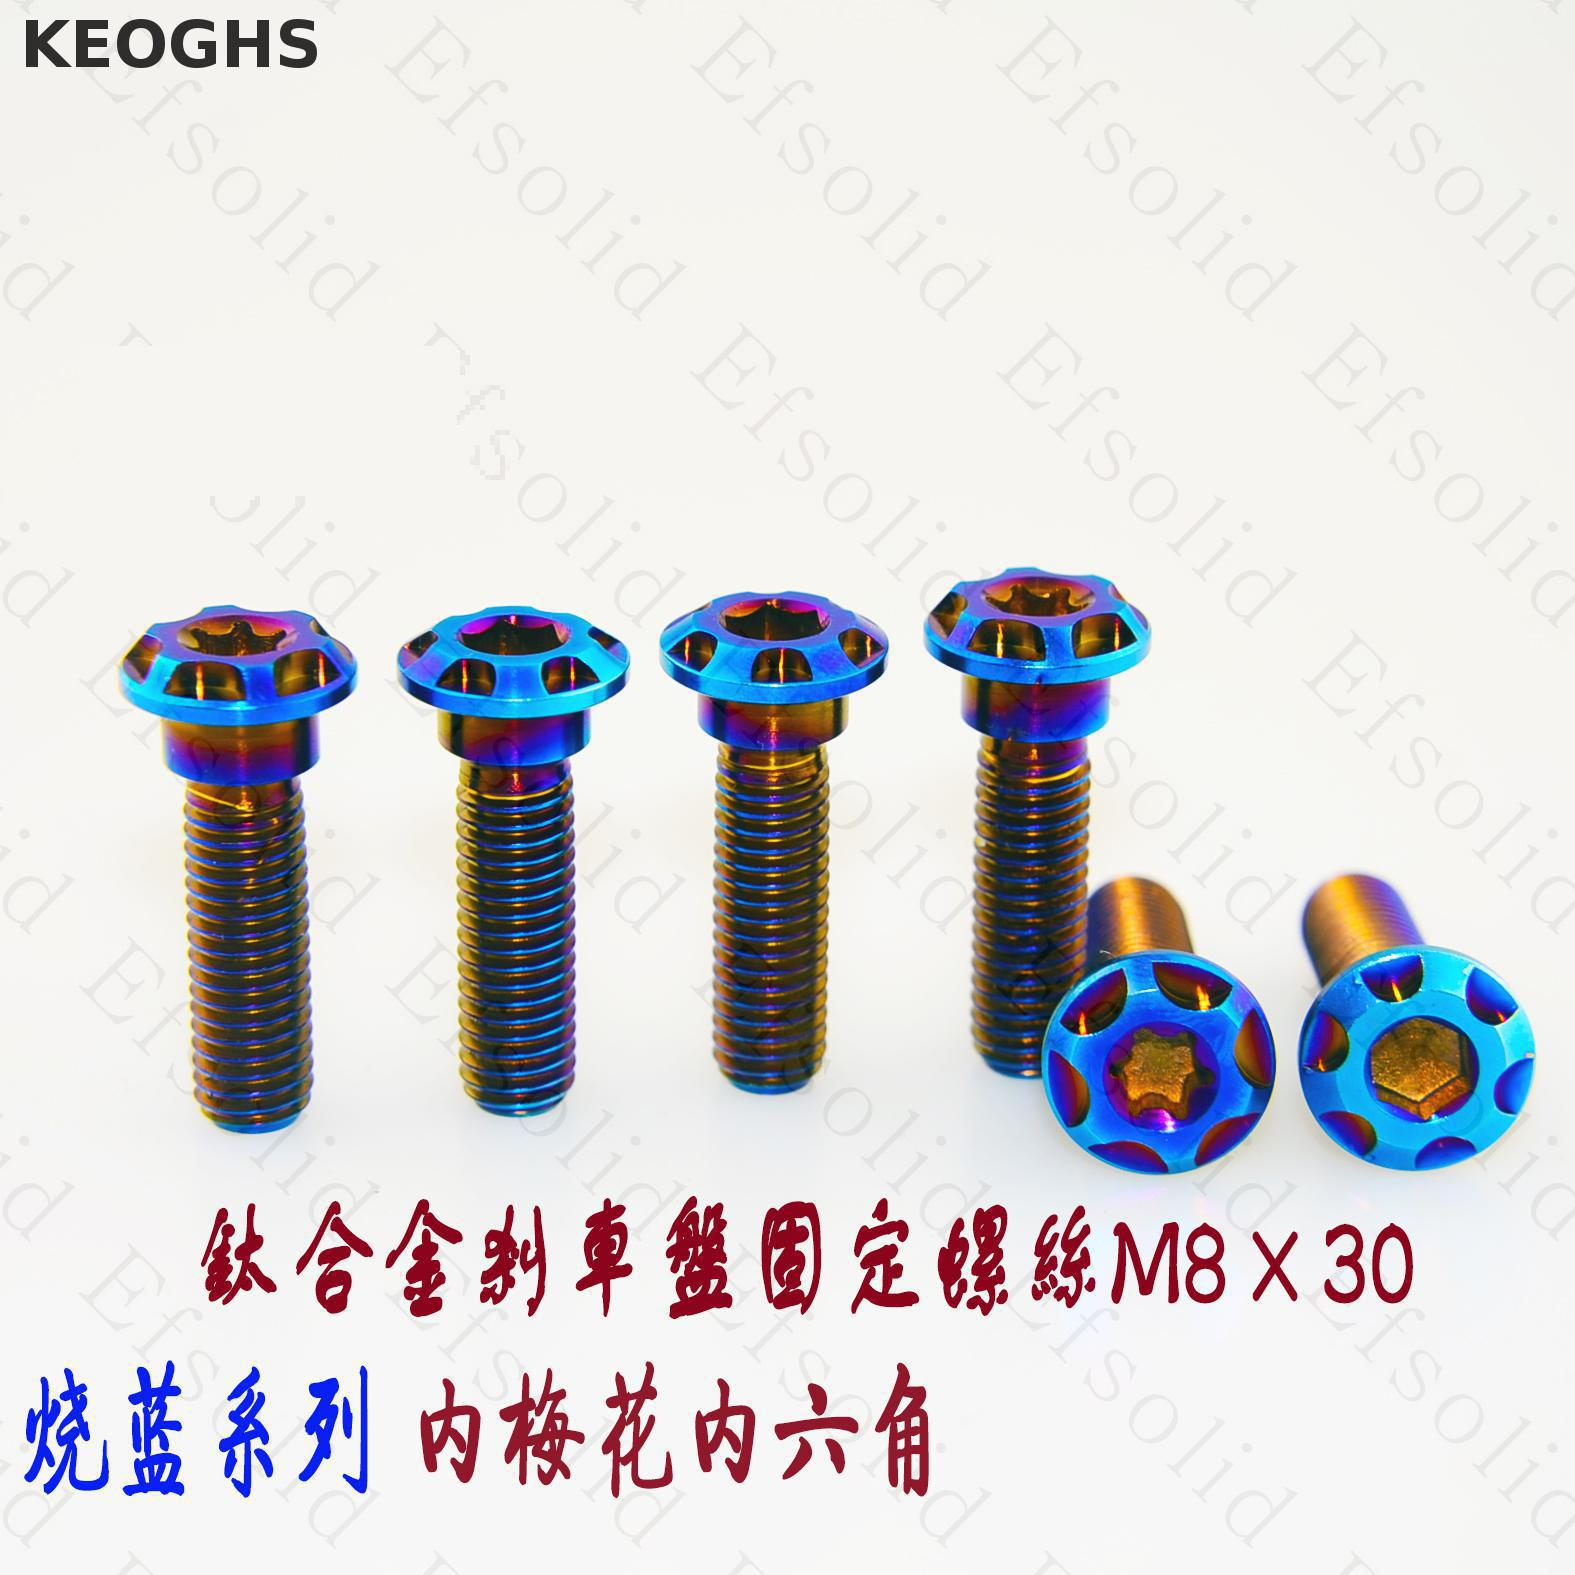 Keoghs Motorcycle Brake Disc Screws With Step M8*30 High Quality Tc4 Titanium For Honda Yamaha Kawasaki Suzuki Ktm Bmw Aprilia keoghs motorcycle floating brake disc 240mm diameter 5 holes for yamaha scooter